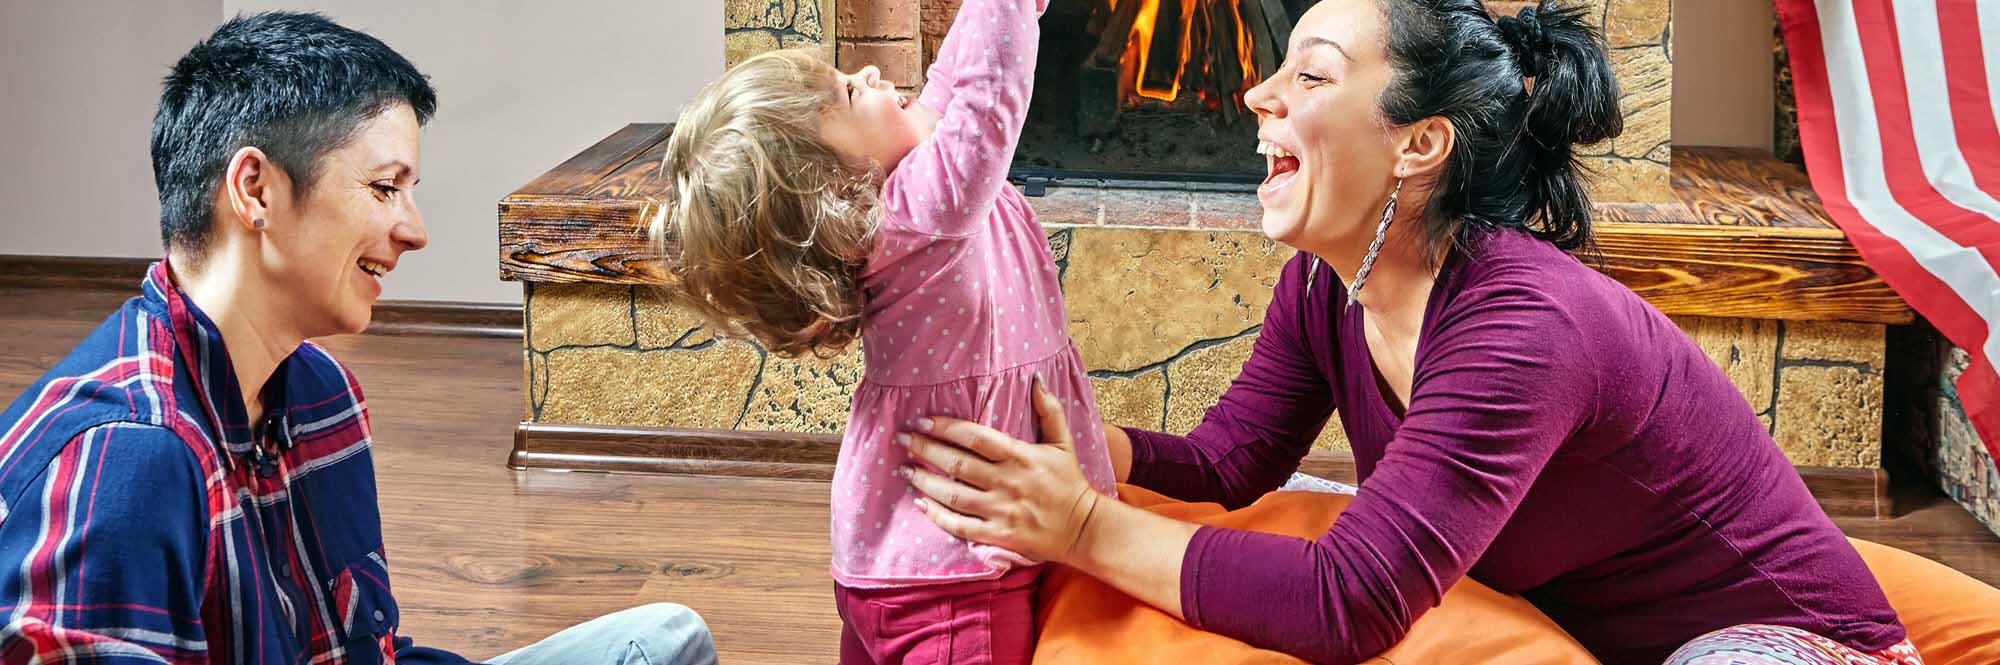 couple playing with child in front of fireplace